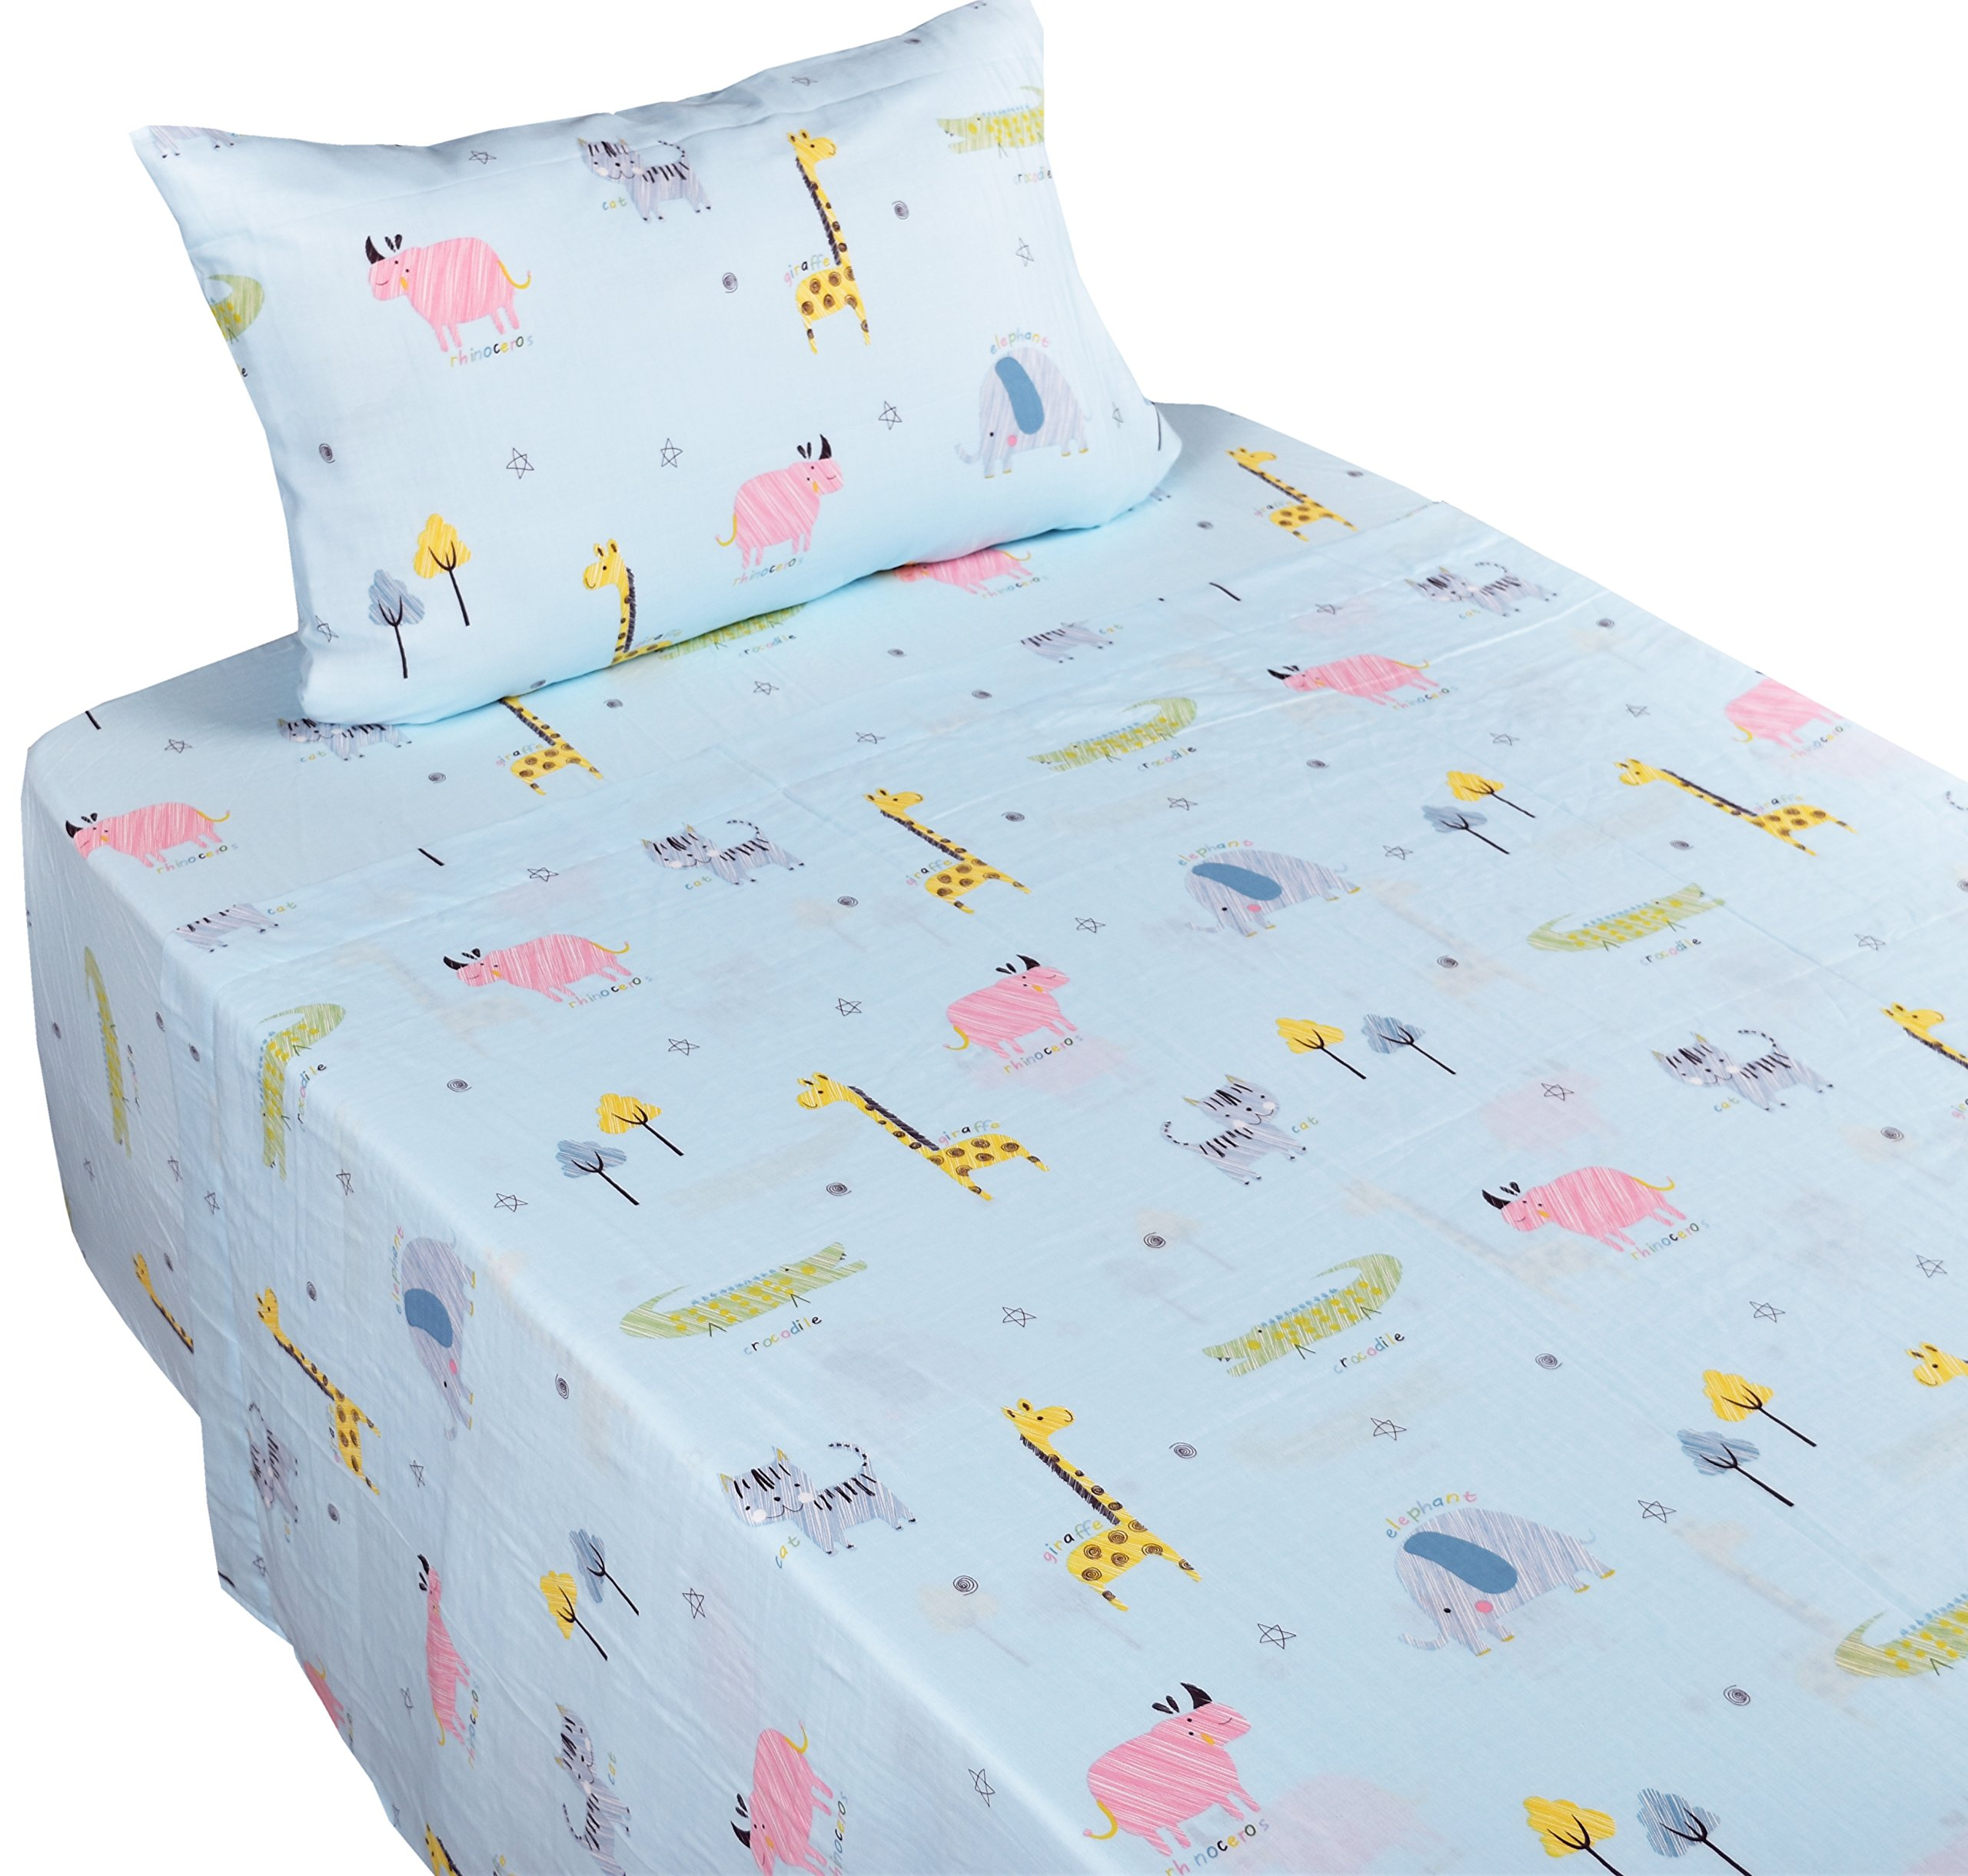 J-pinno Jungle Forest Animals Cute Boys Girls Double Layer Muslin Cotton Bed Sheet Set Twin, Flat Sheet & Fitted Sheet & Pillowcase Natural Hypoallergenic Bedding Set (19, Twin)